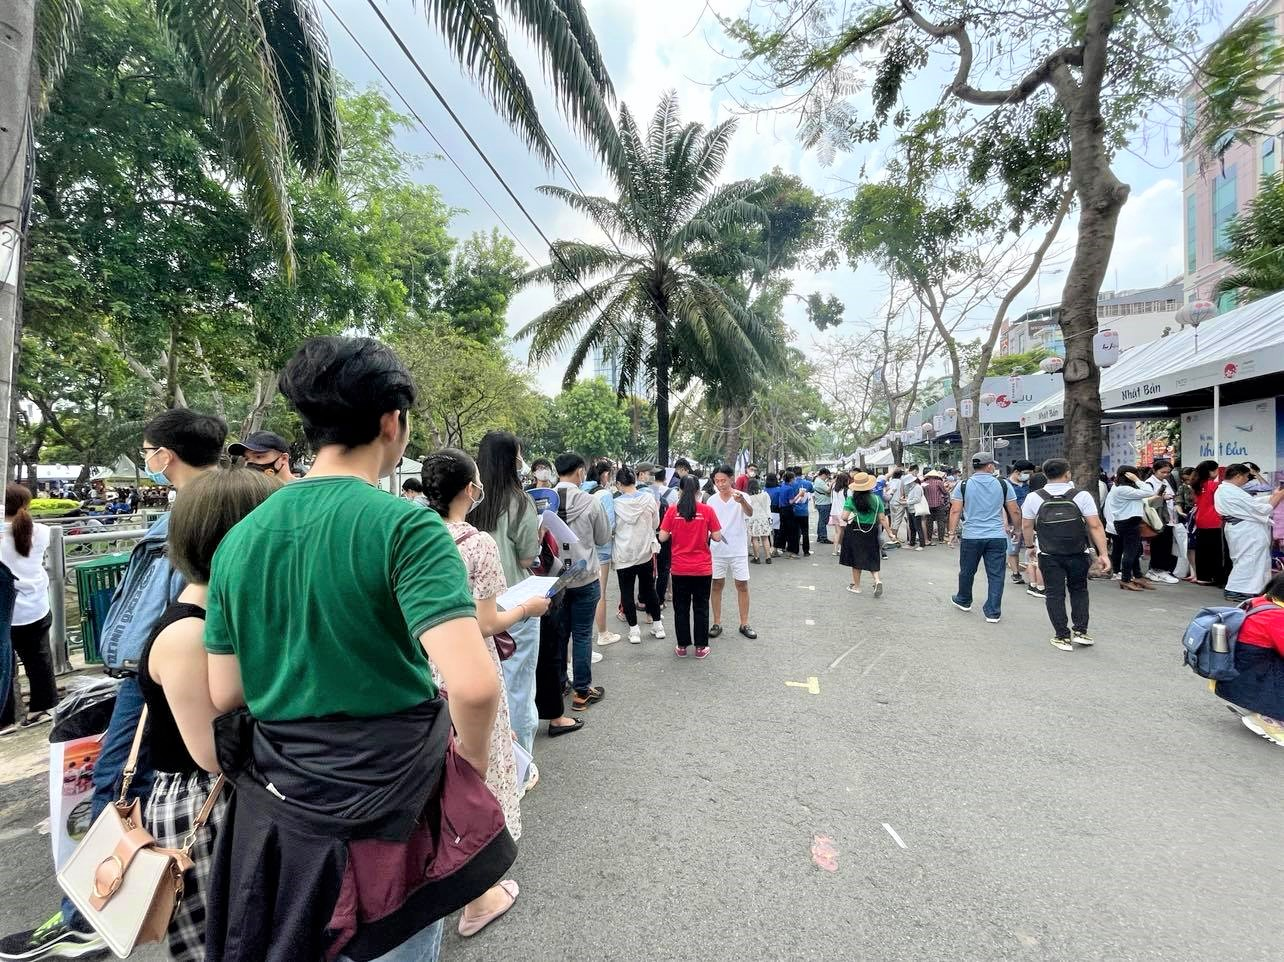 People line up to do a survey by the Japan National Tourism Organization and exchange gifts at the Japan Vietnam Festival in Ho Chi Minh City on April 17, 2021. Photo: Dong Nguyen / Tuoi Tre News